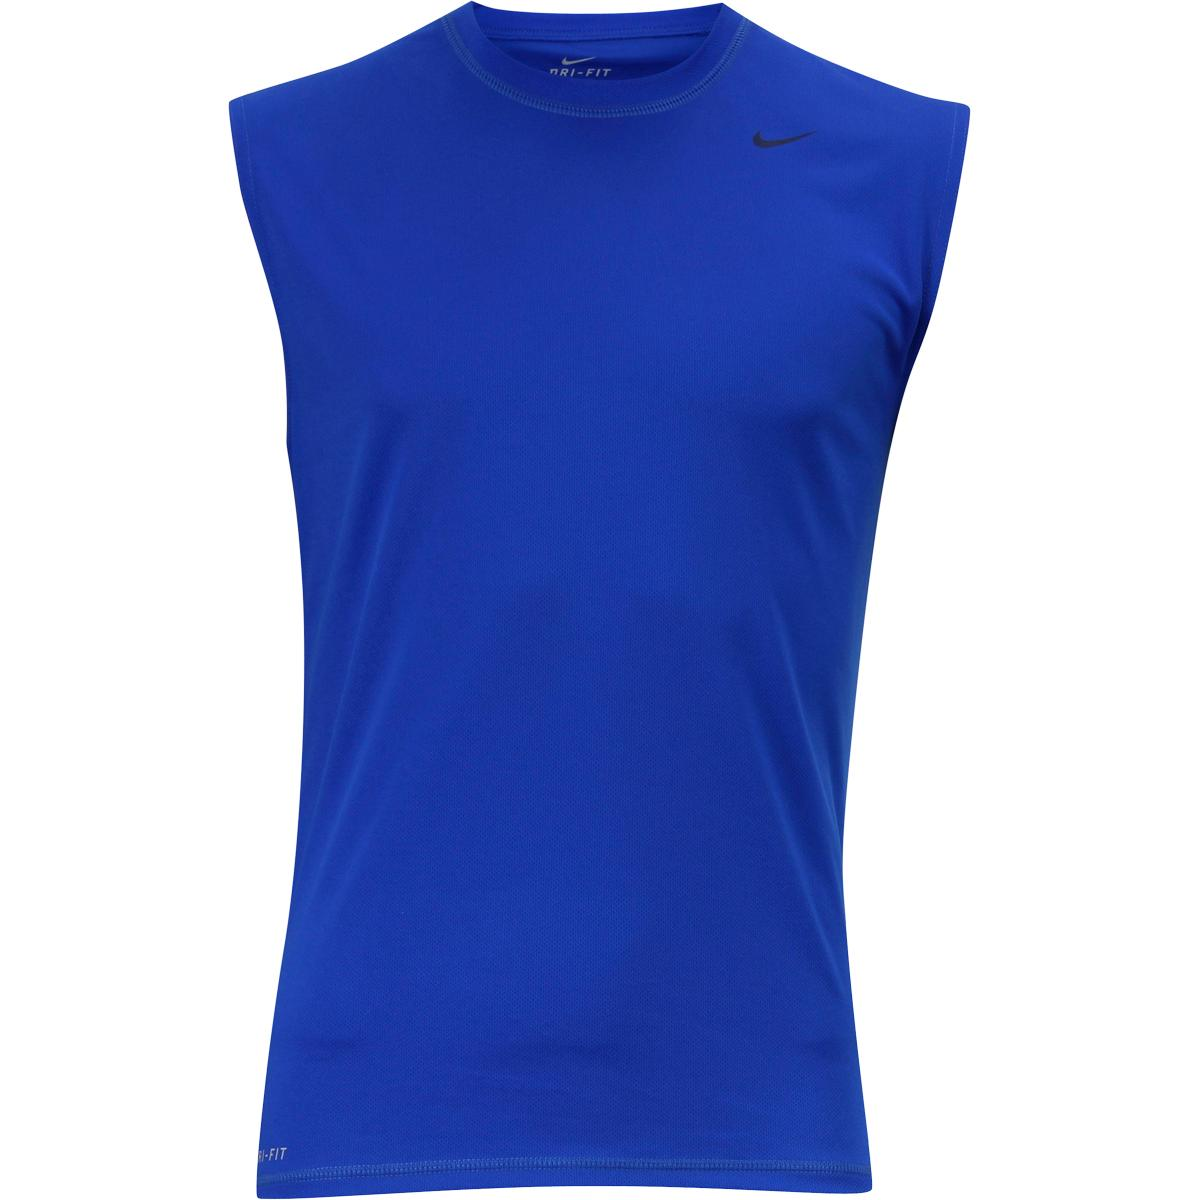 2637adf341b043 Sleeveless Nike Shirts – EDGE Engineering and Consulting Limited